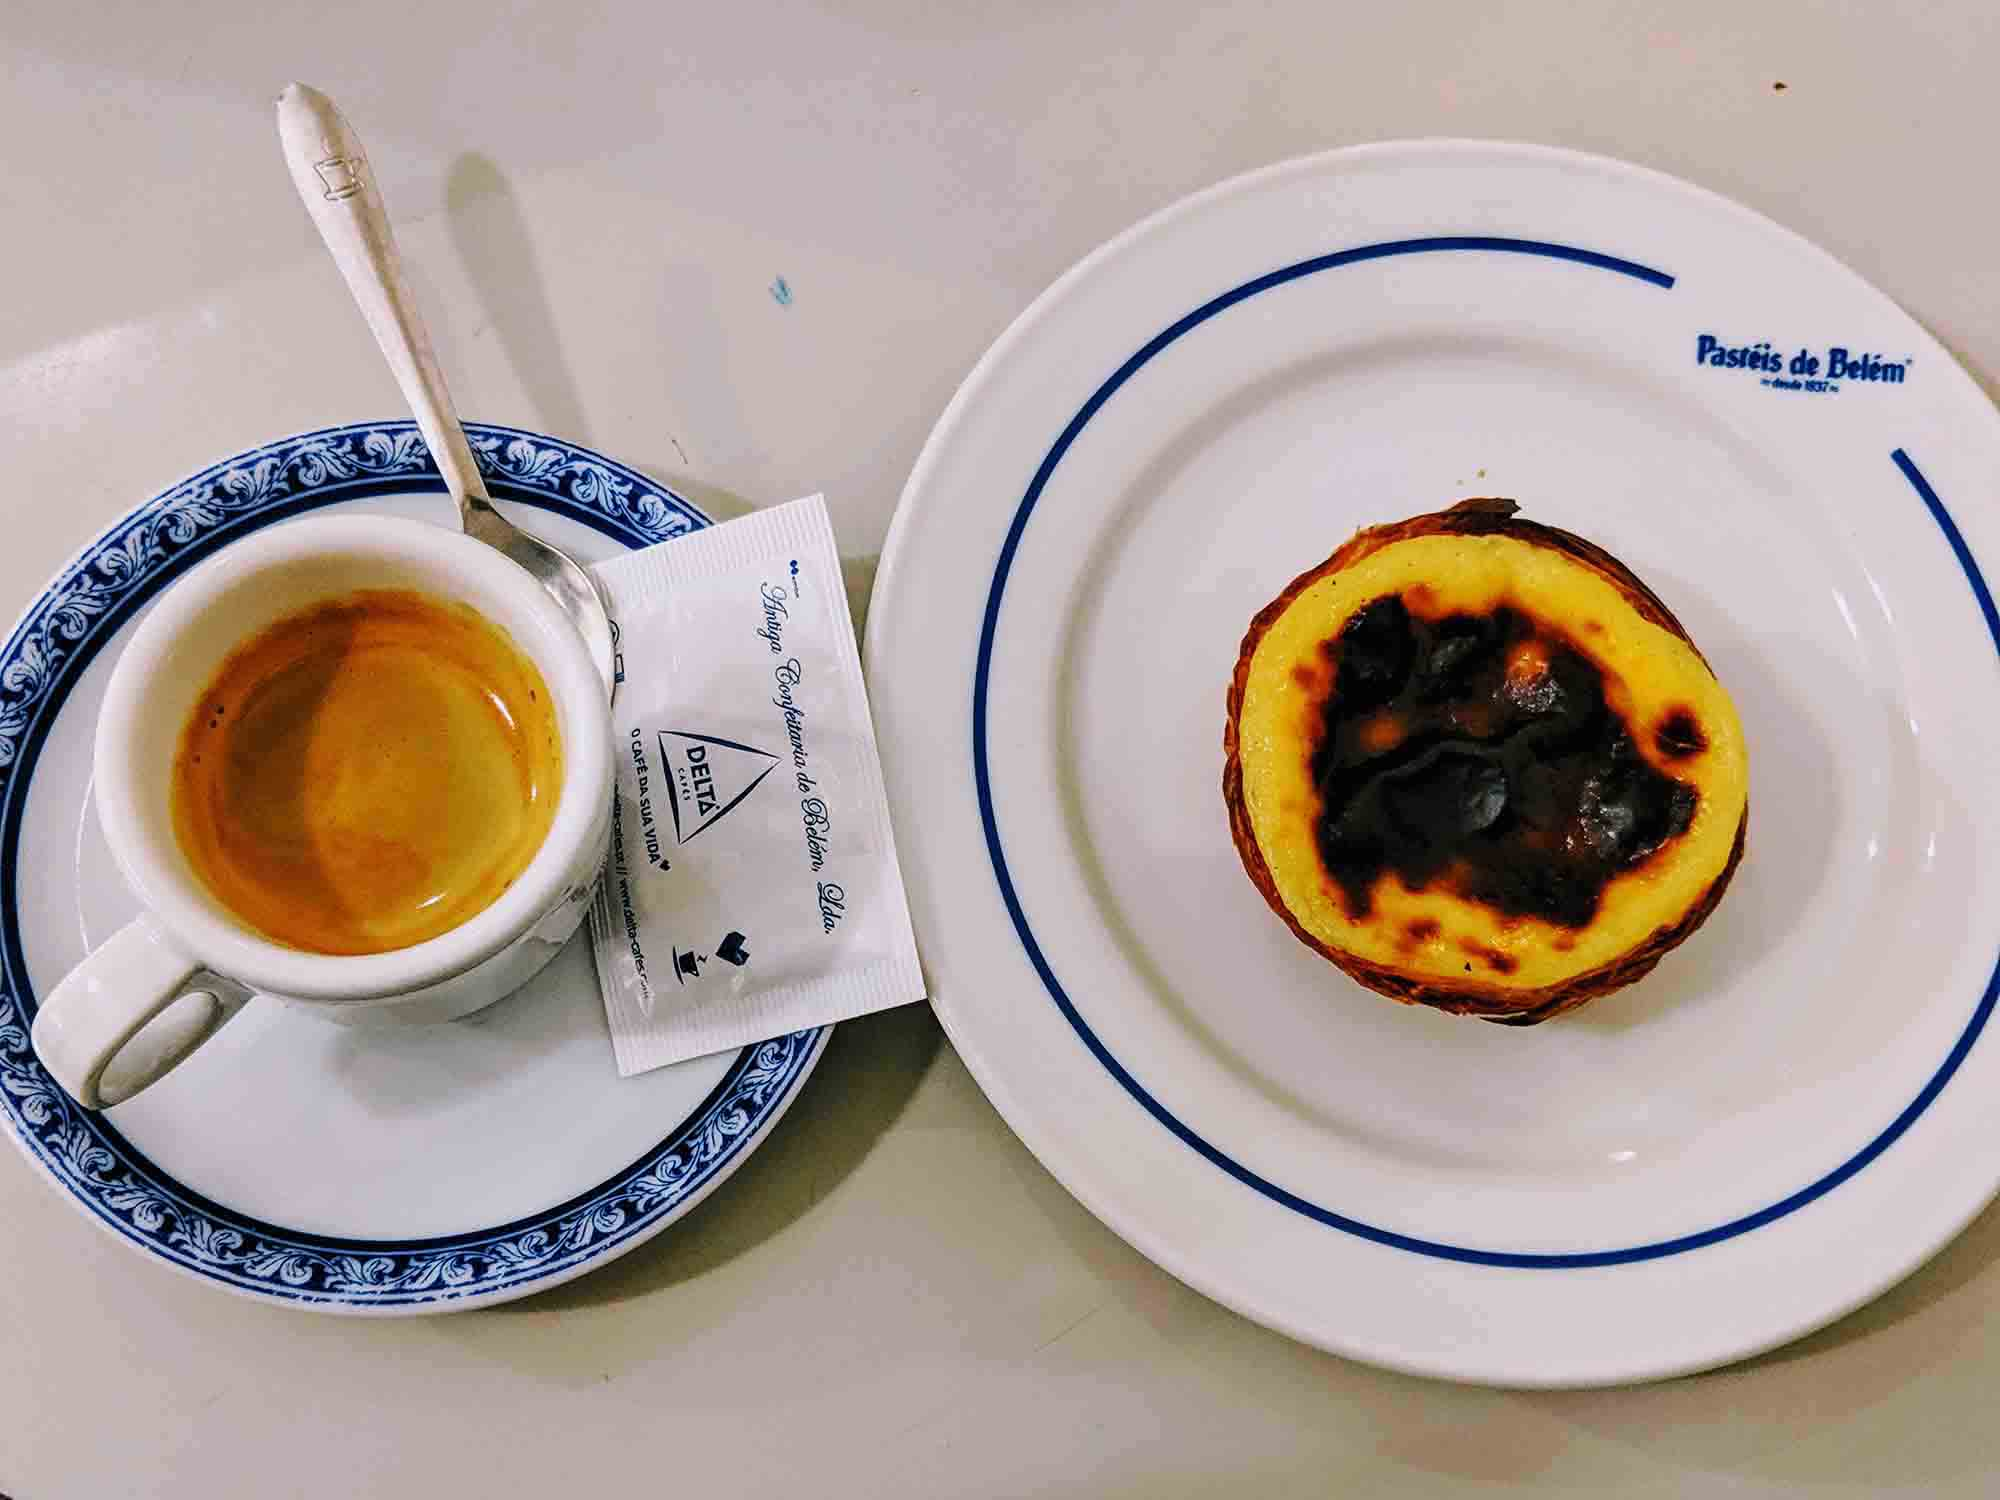 coffee and nata pasteis de belem